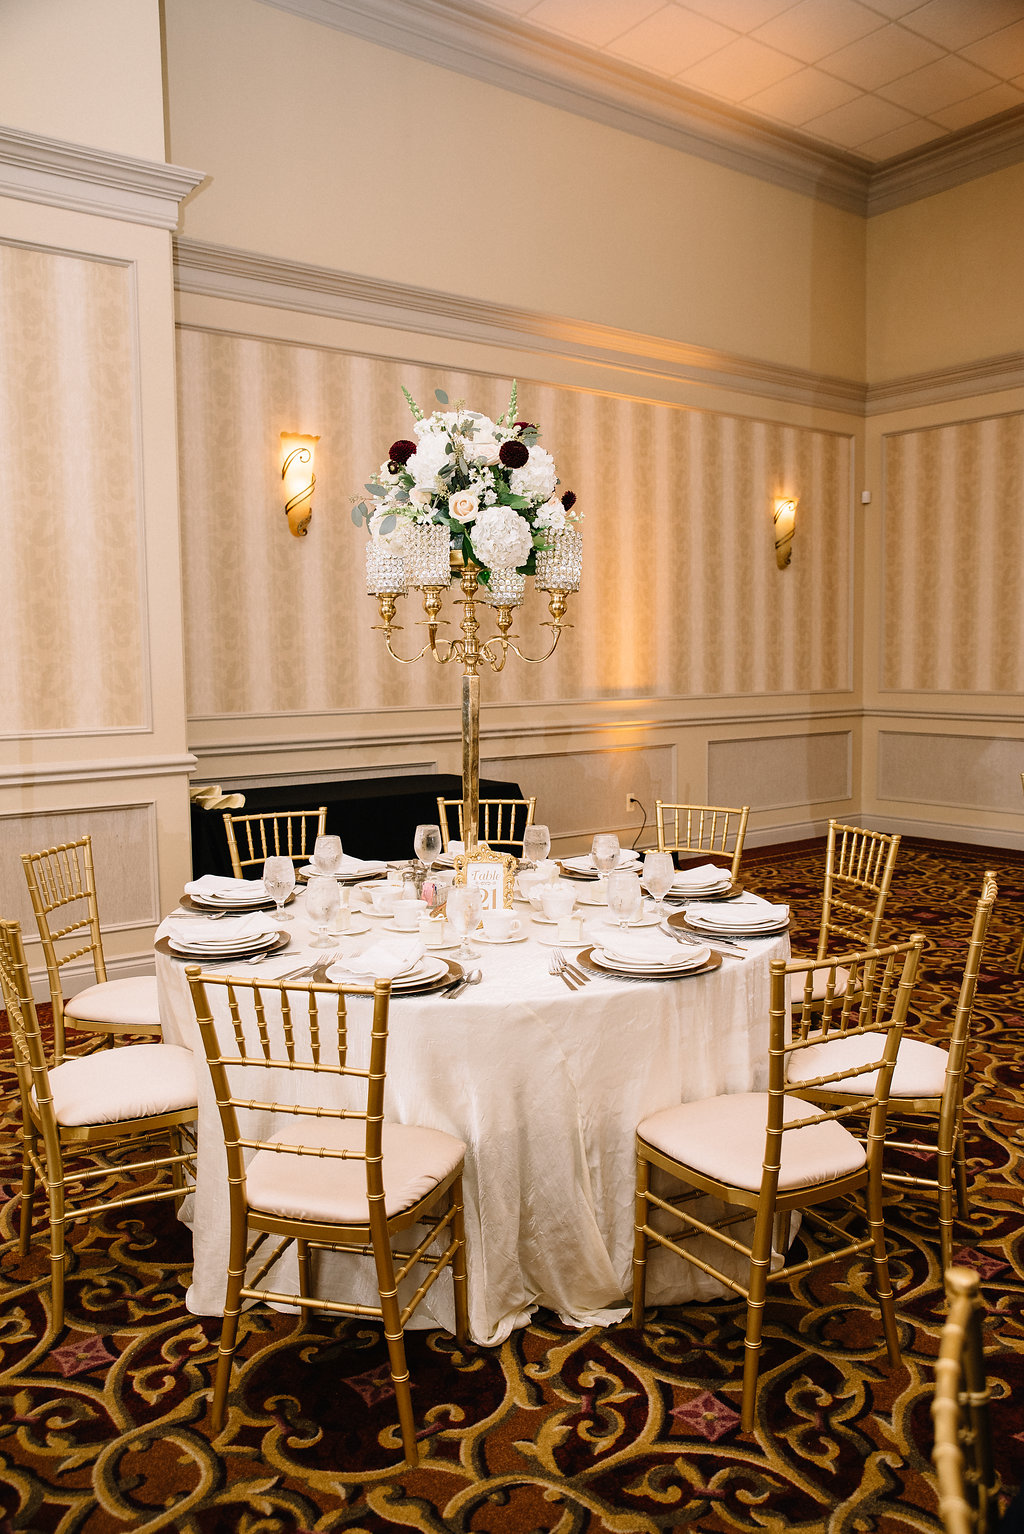 Palazzo_Grande_Shelby_Township_Wedding_Photos-858.jpg